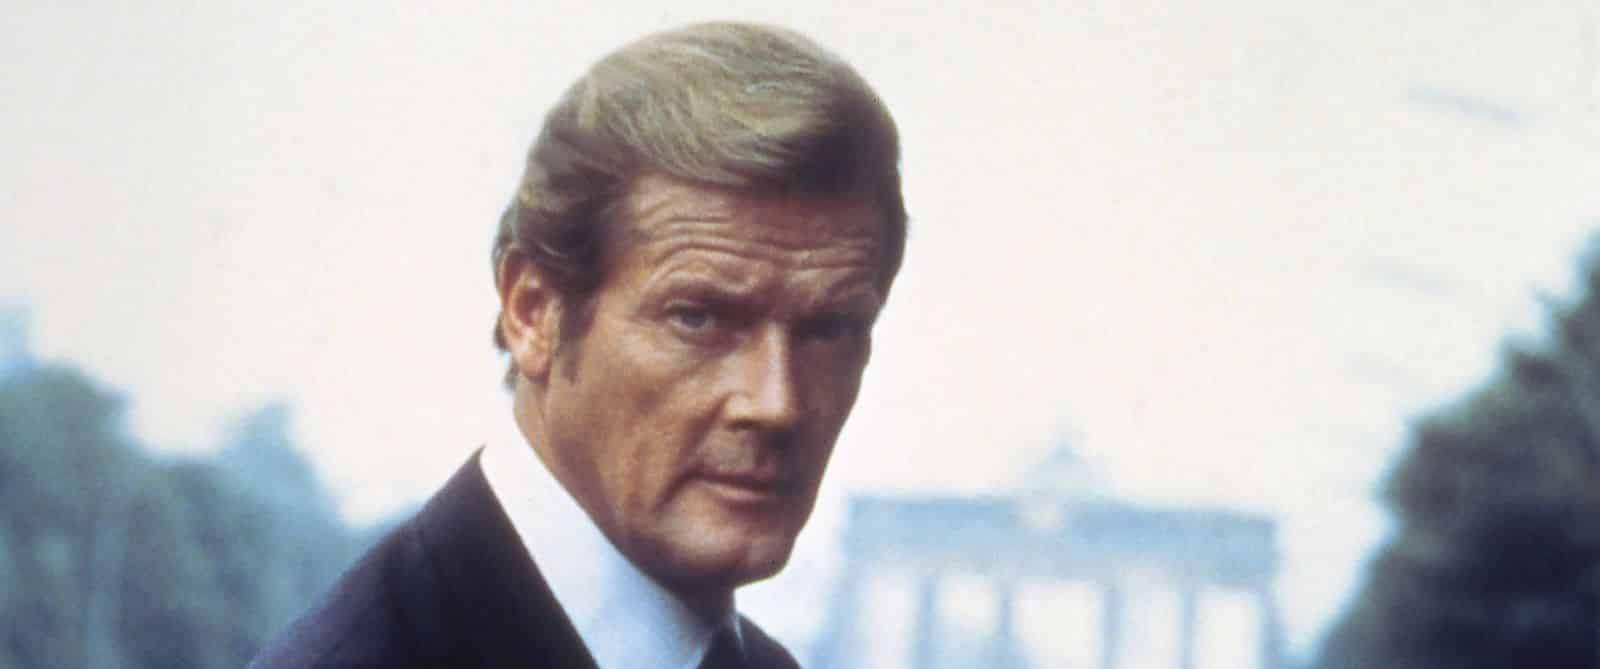 gty-roger-moore-ps-170523_31x13_1600